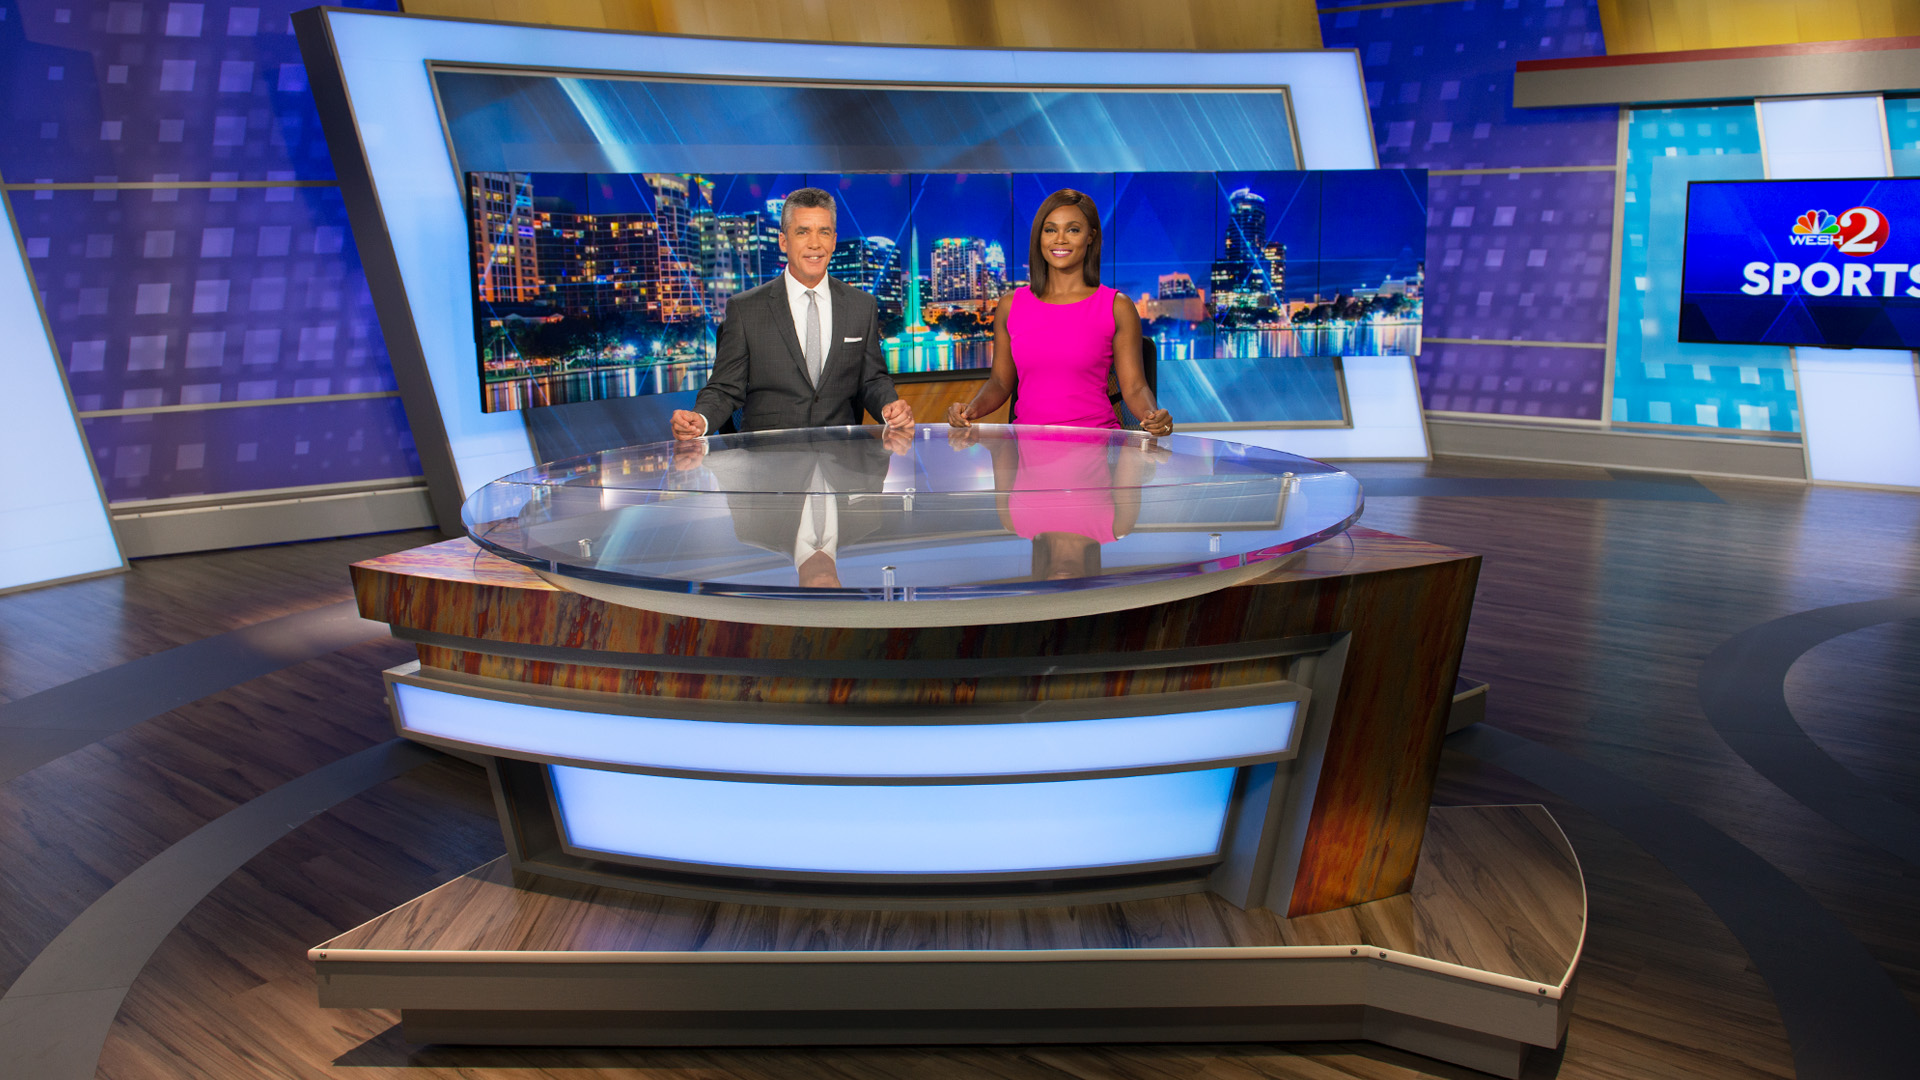 ncs_wesh-2-news-tv-studio-devlin_0003